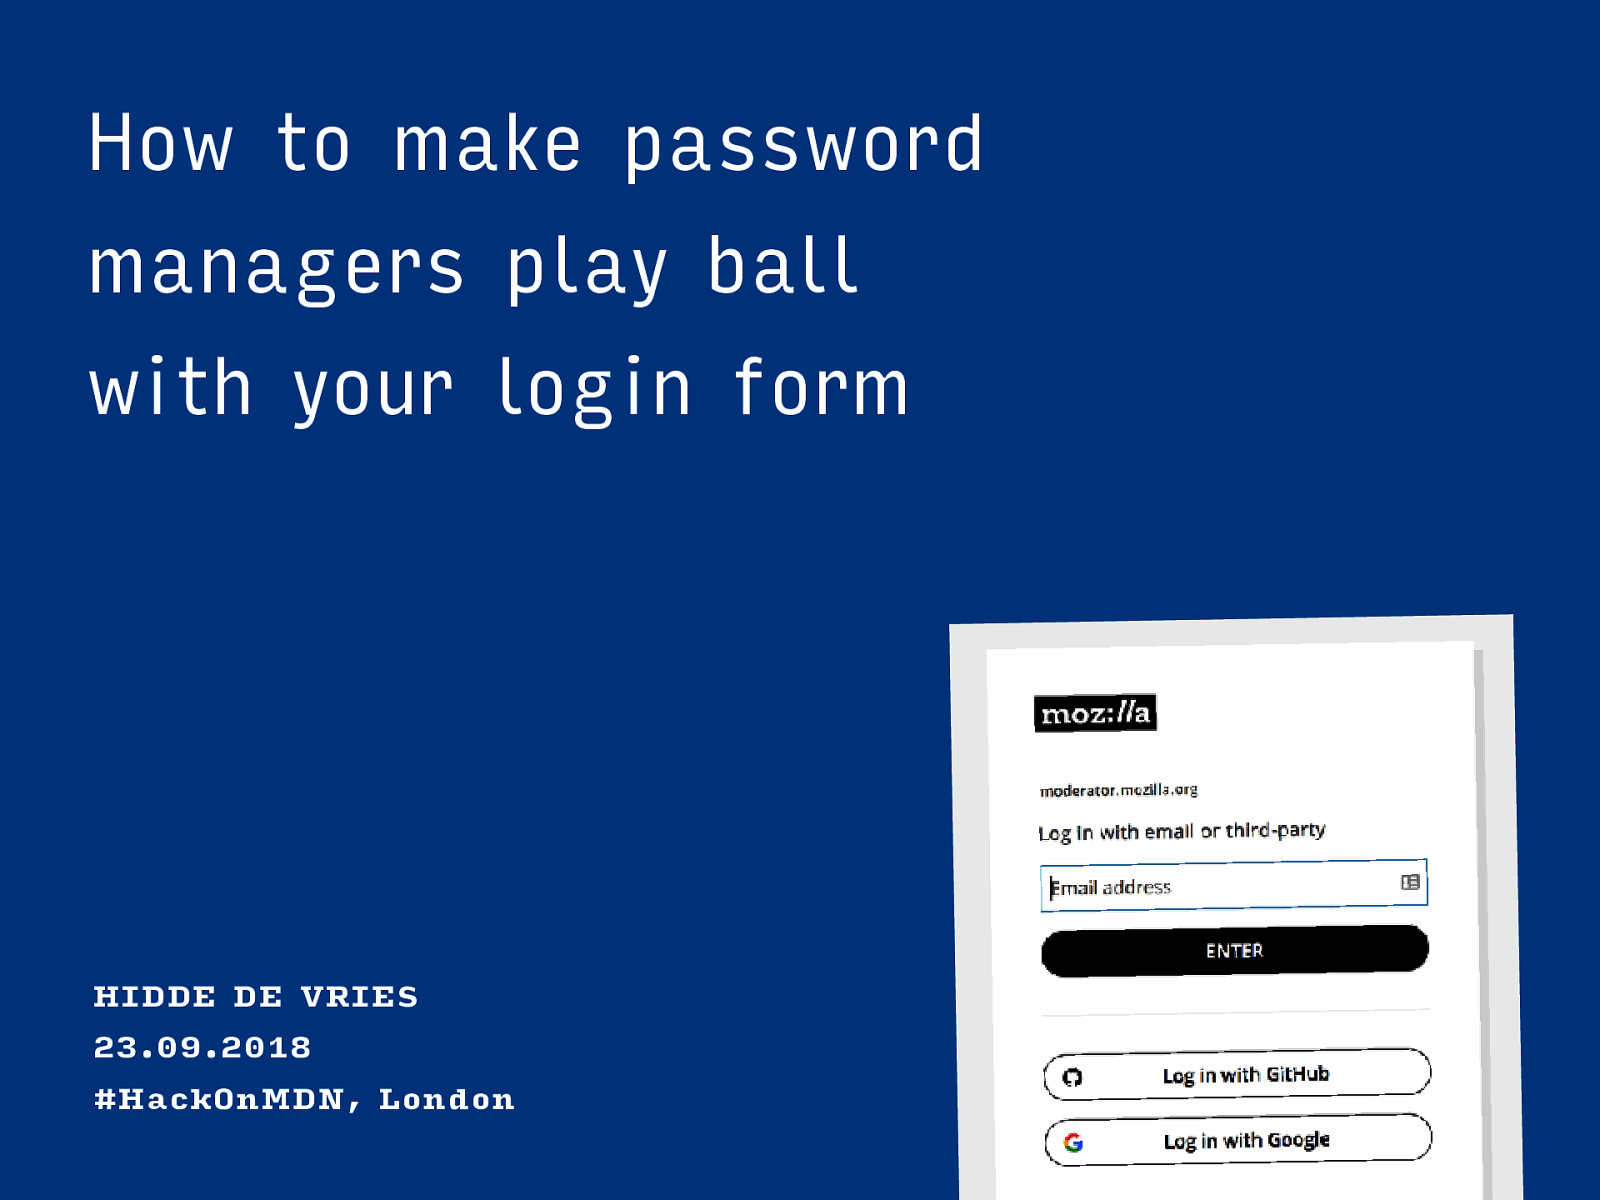 How to make password managers play ball with your login form